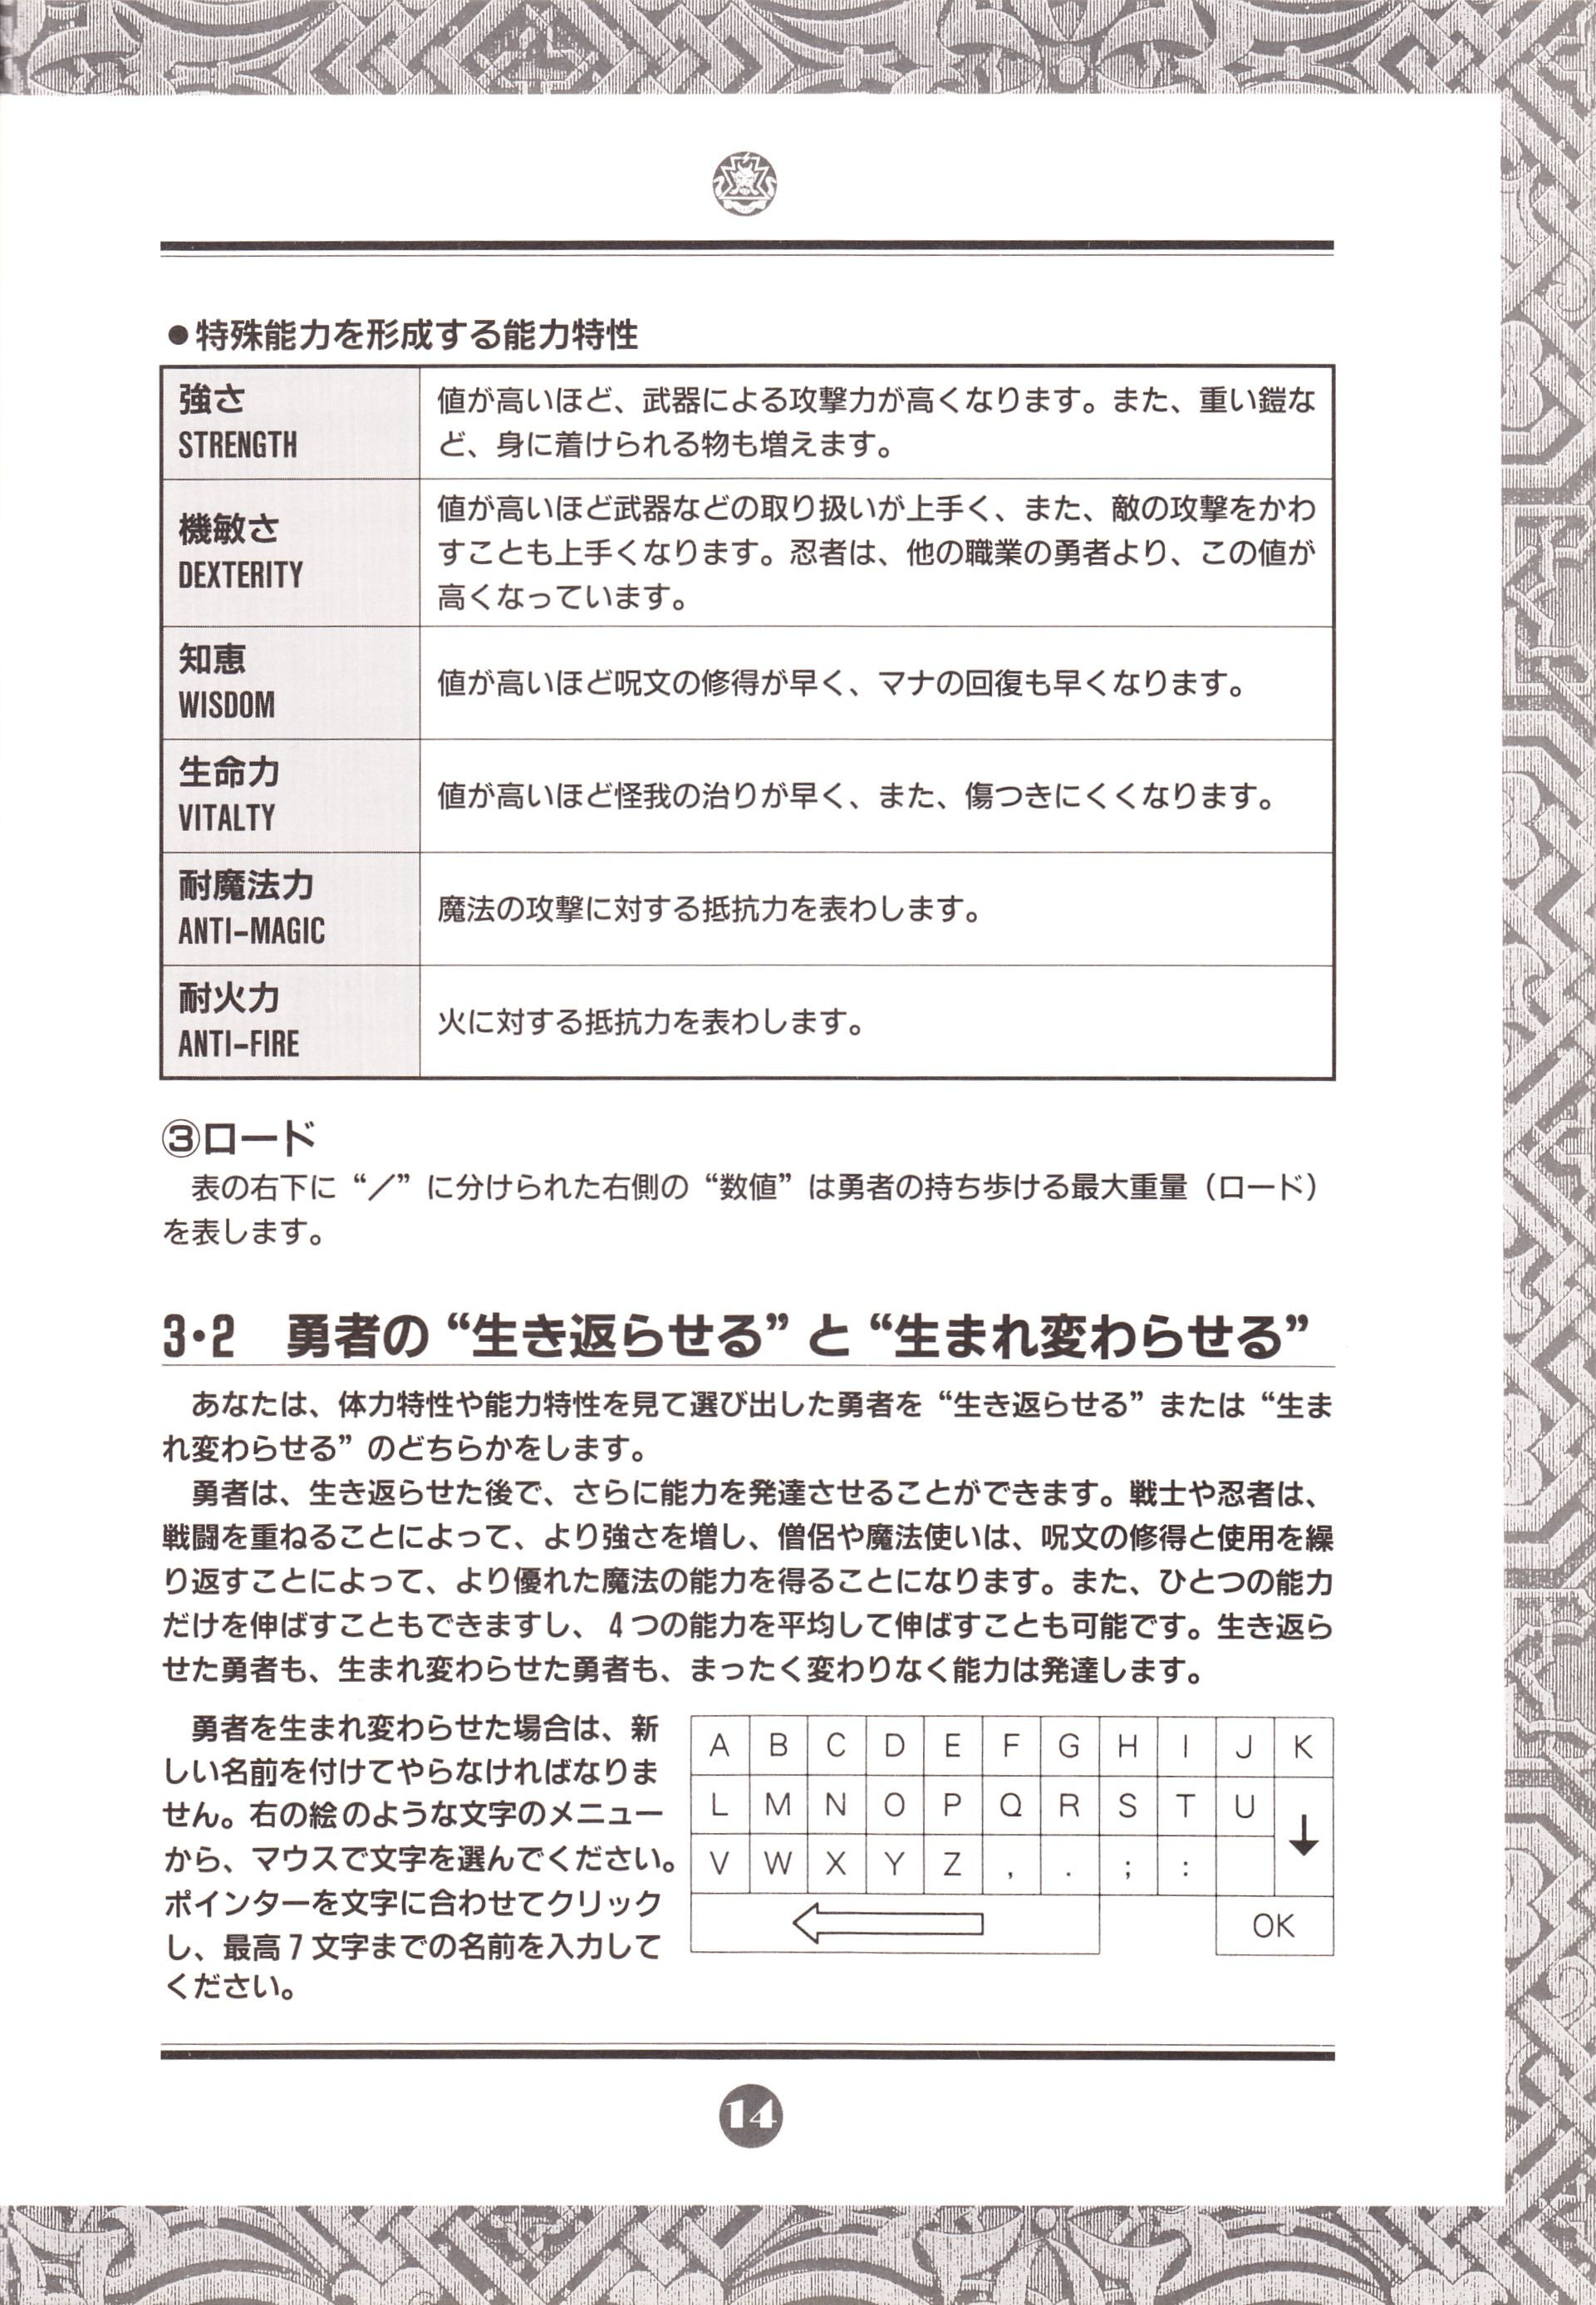 Game - Chaos Strikes Back - JP - PC-9801 - 3-5-inch - An Operation Manual - Page 017 - Scan